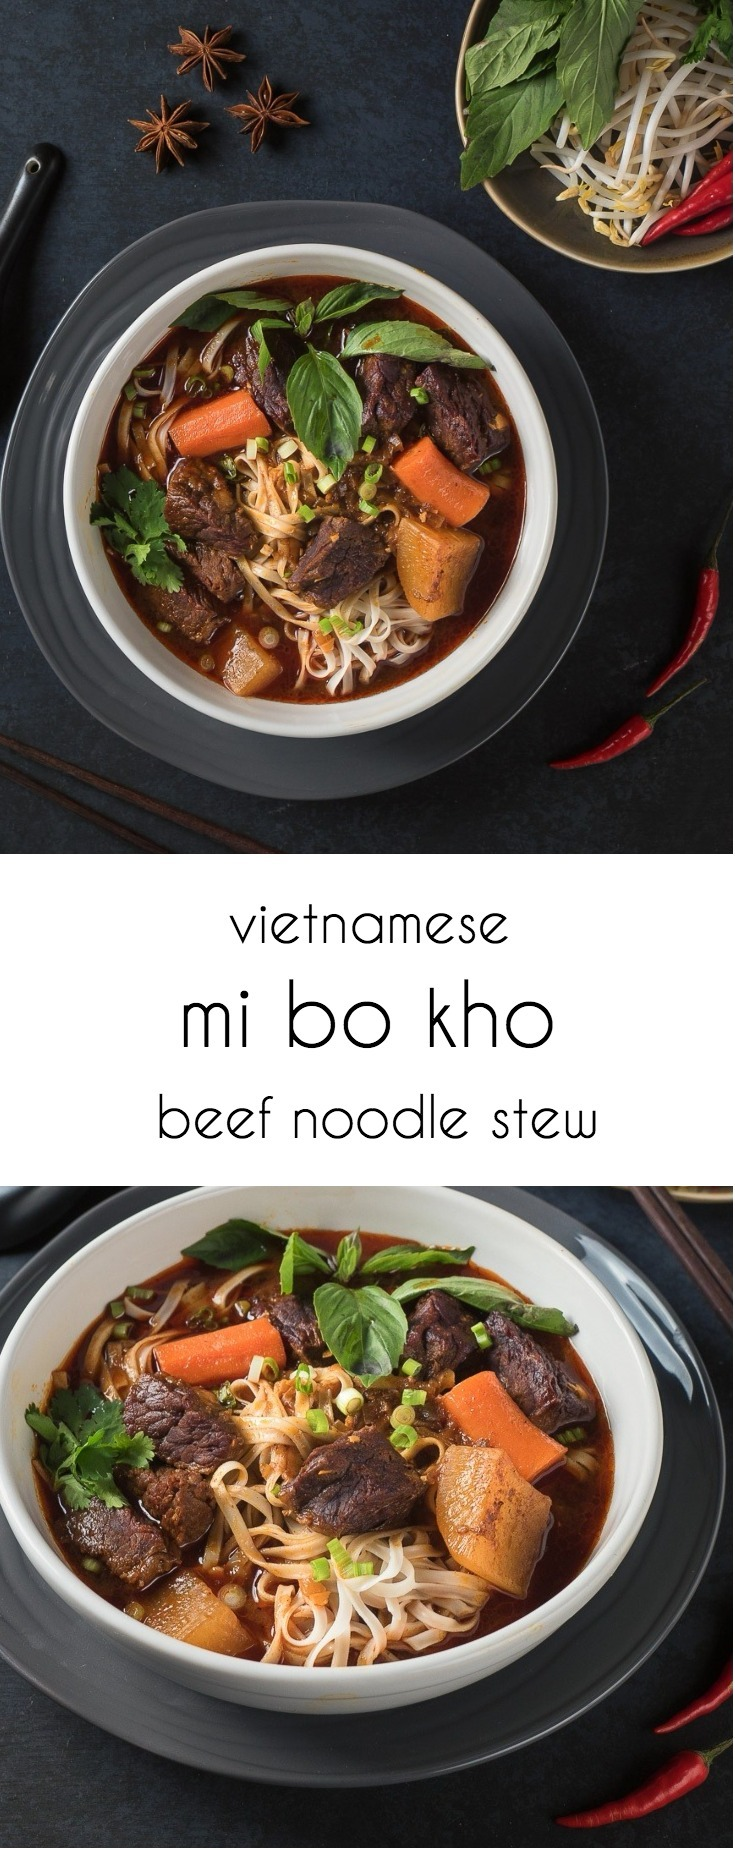 Mi bo kho - Vietnamese beef stew with rice noodles is beef stew cranked up to 10!